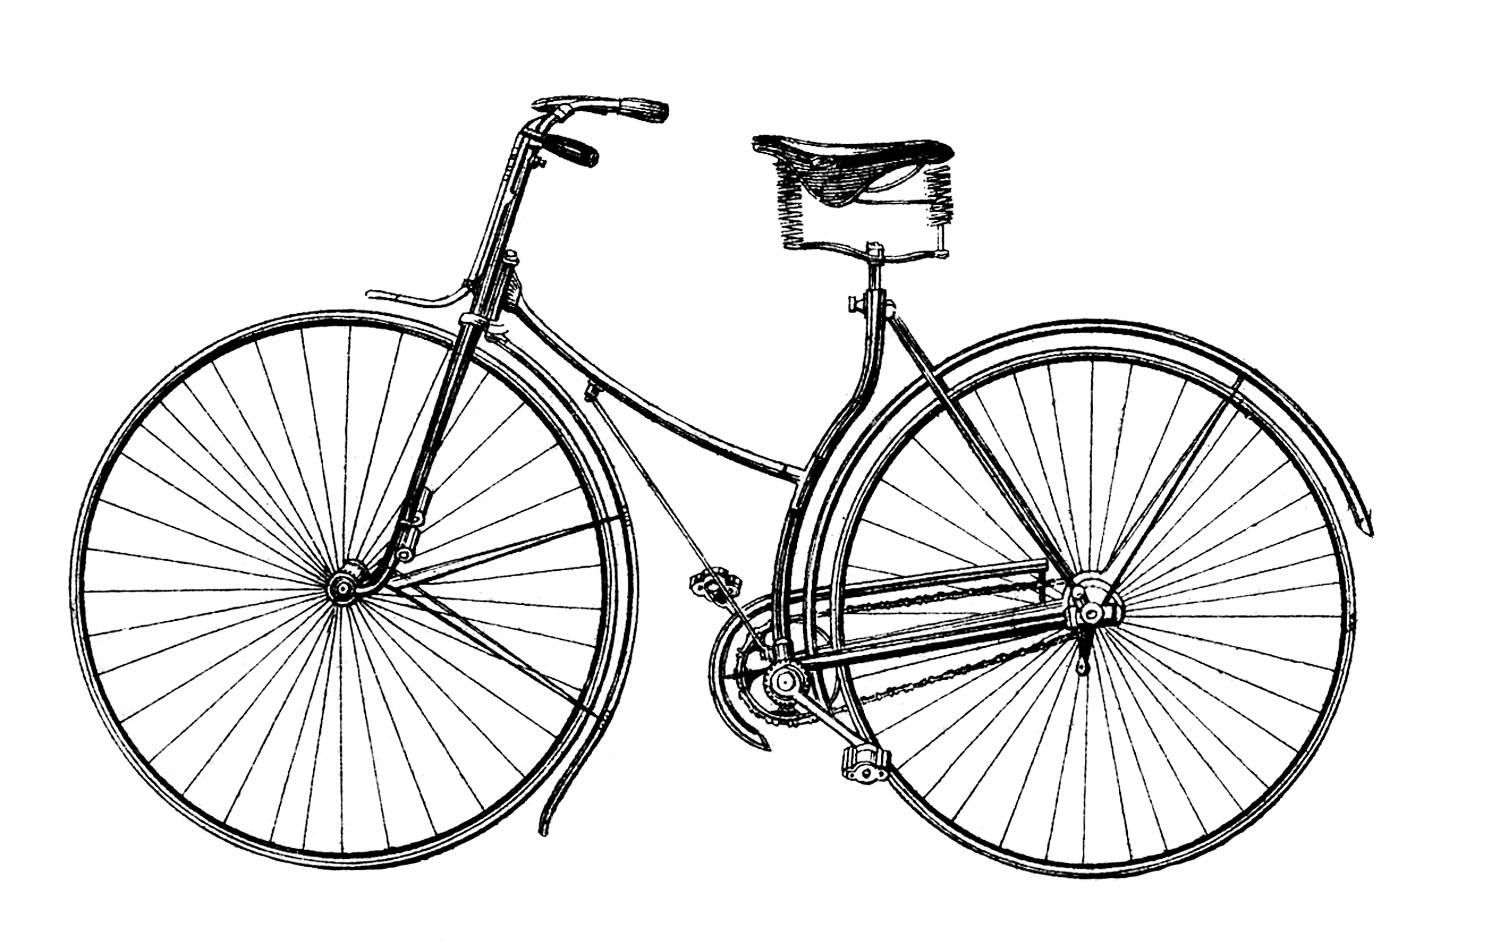 hight resolution of free vector downloads vintage bicycle the graphics fairy